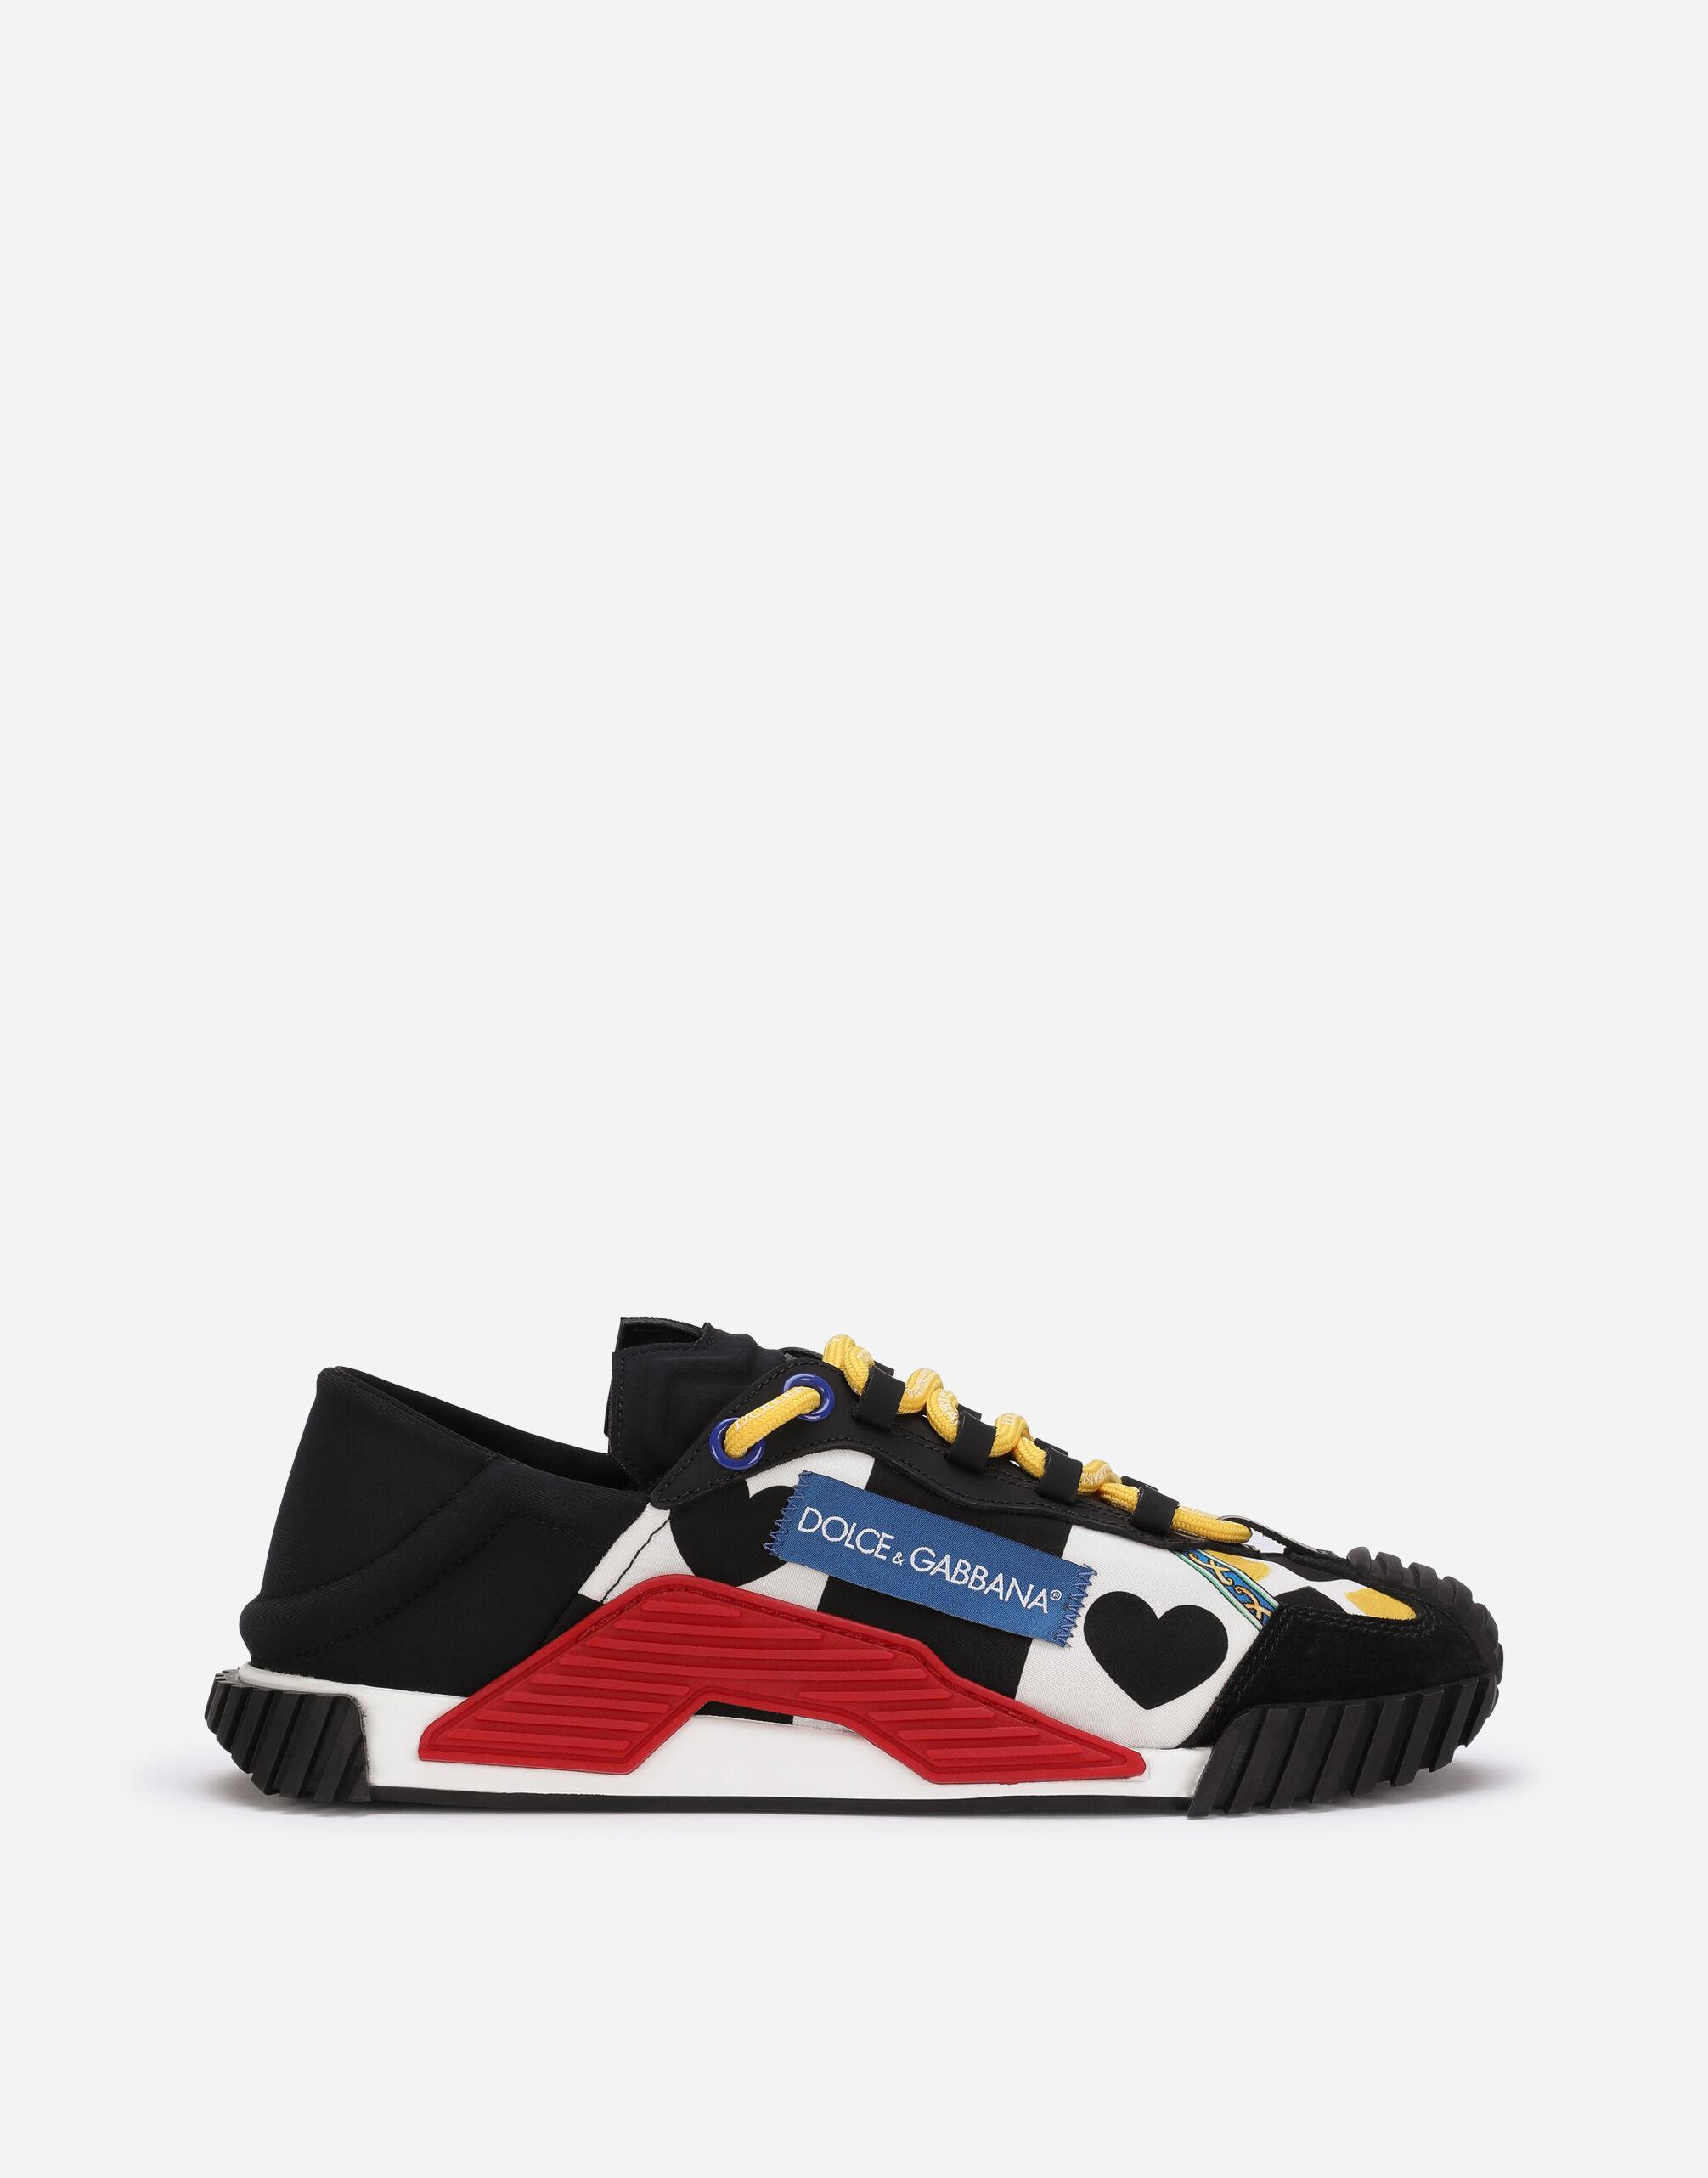 Mixed material NS1 slip-on sneakers with carretto patchwork print